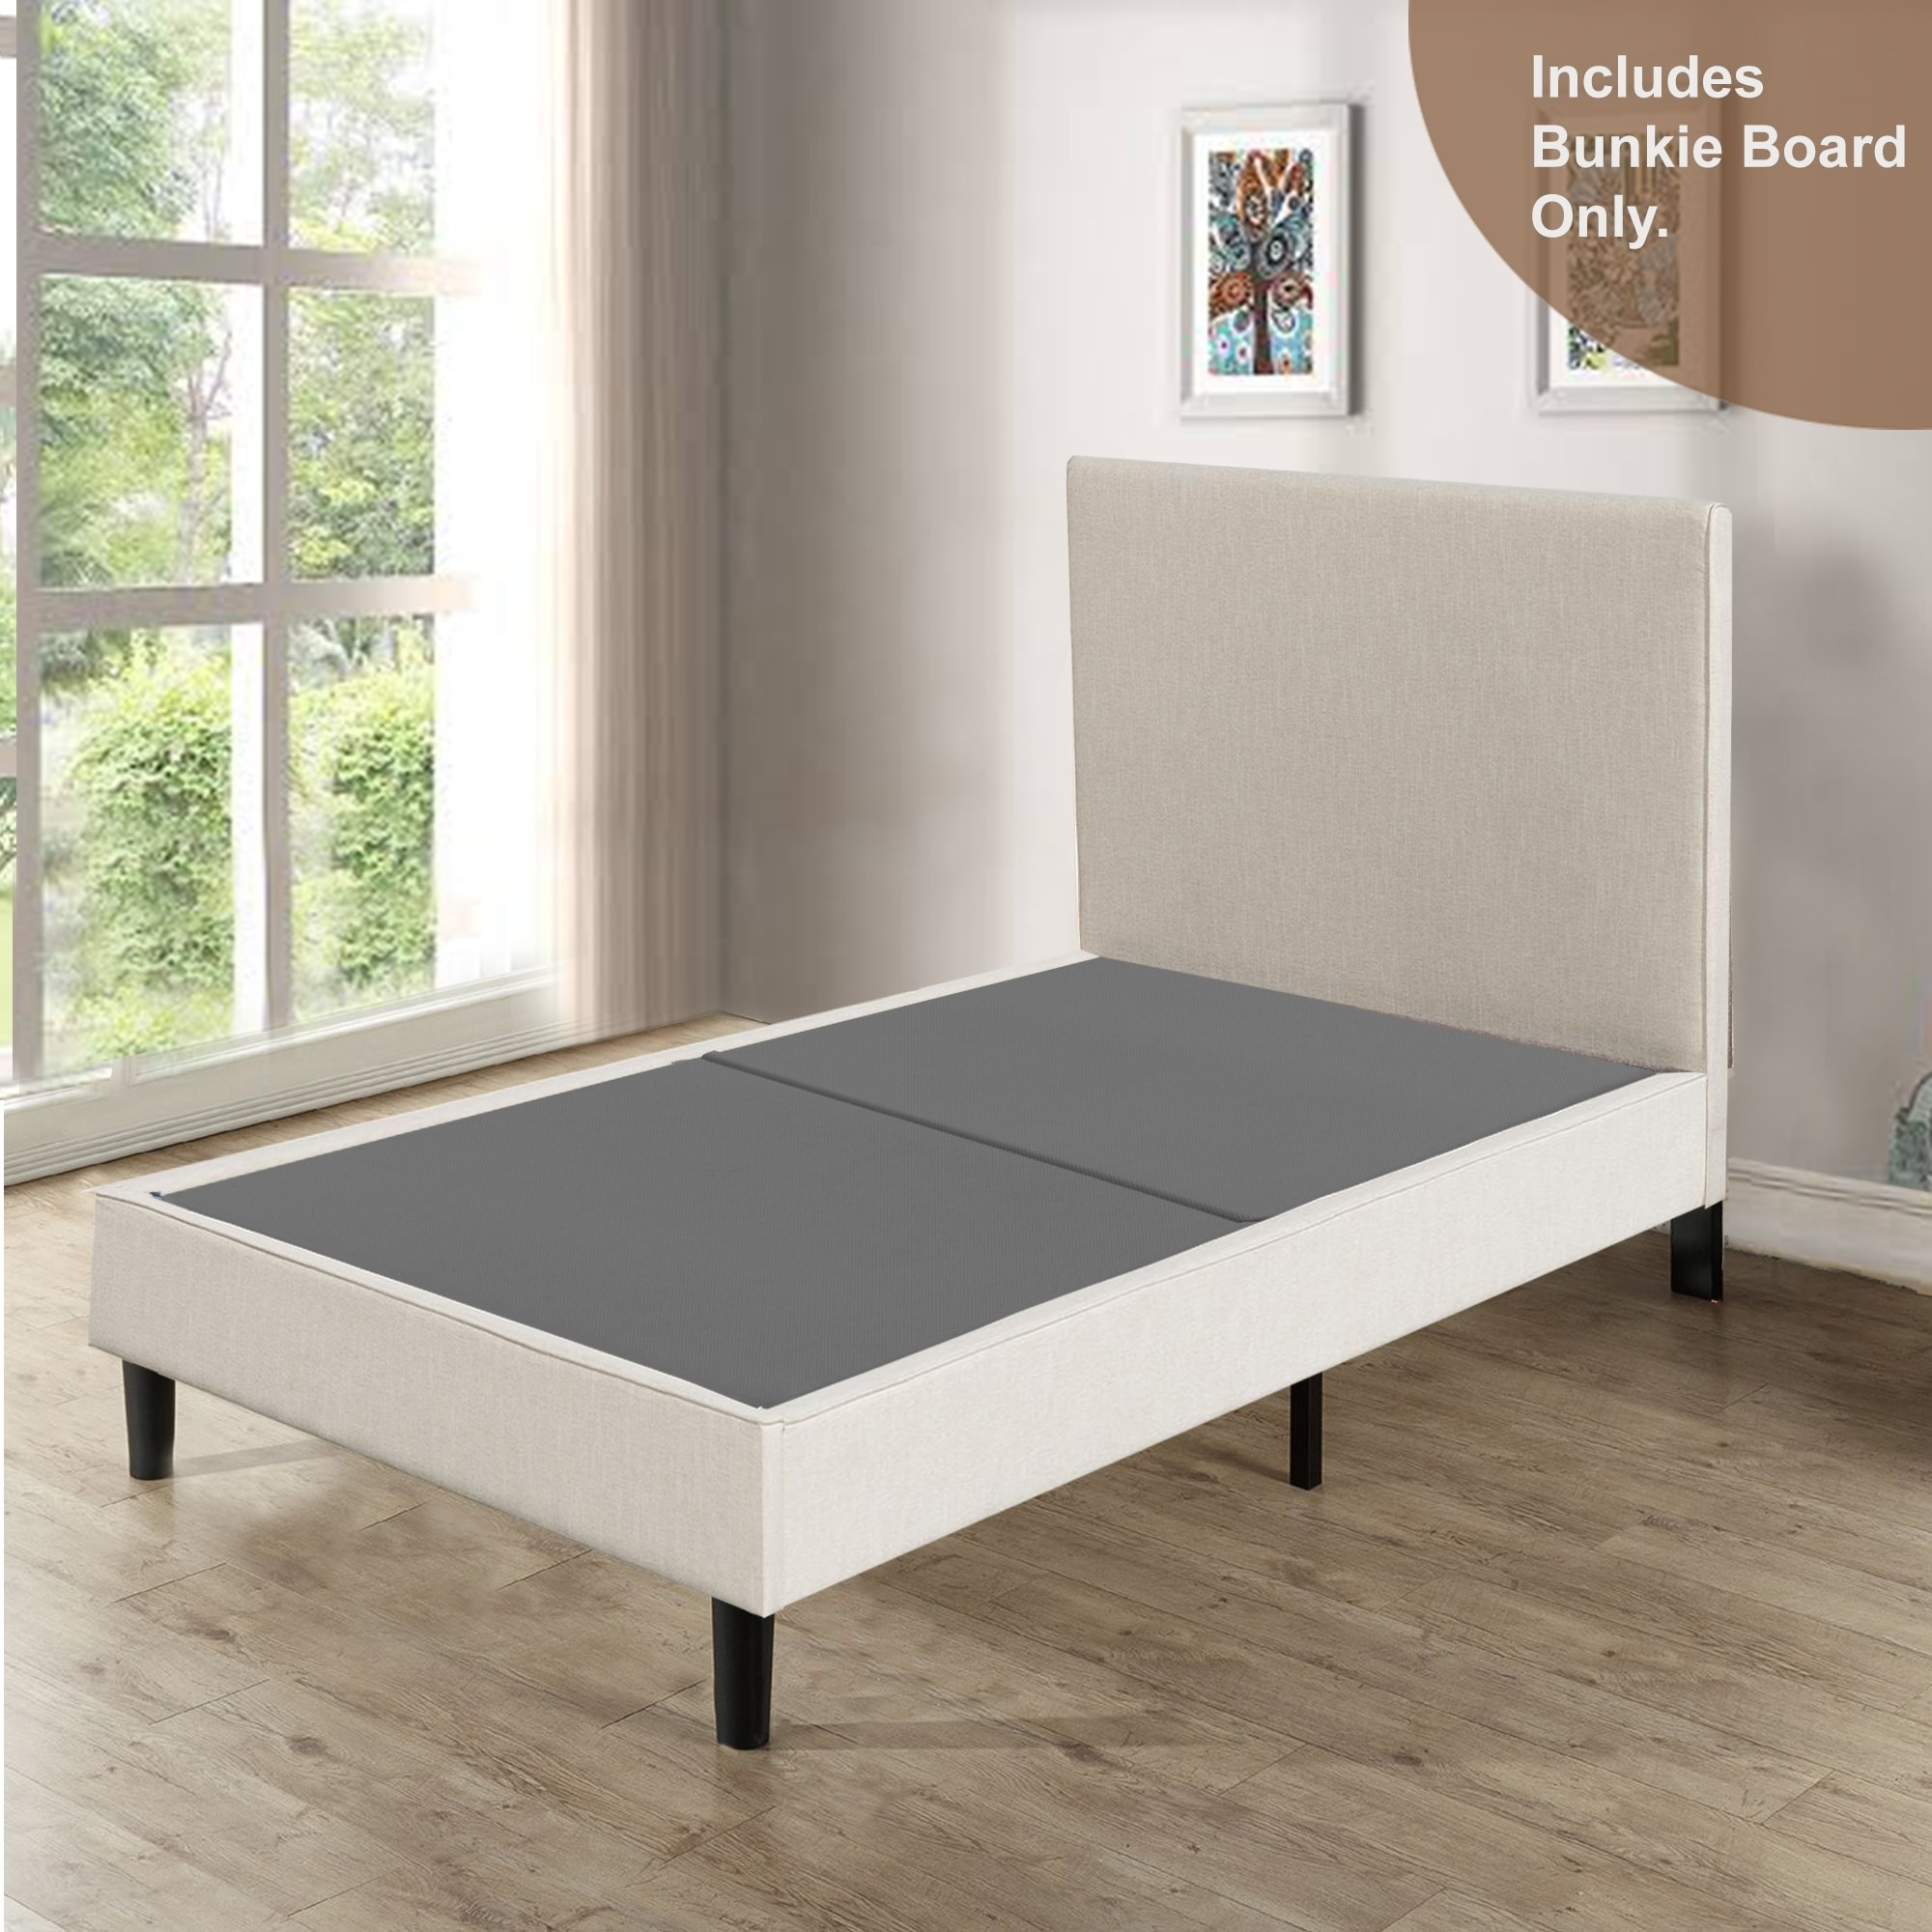 1.5-inch Fully Assembled Foundation Bunkie Board Continental Mattress King ...